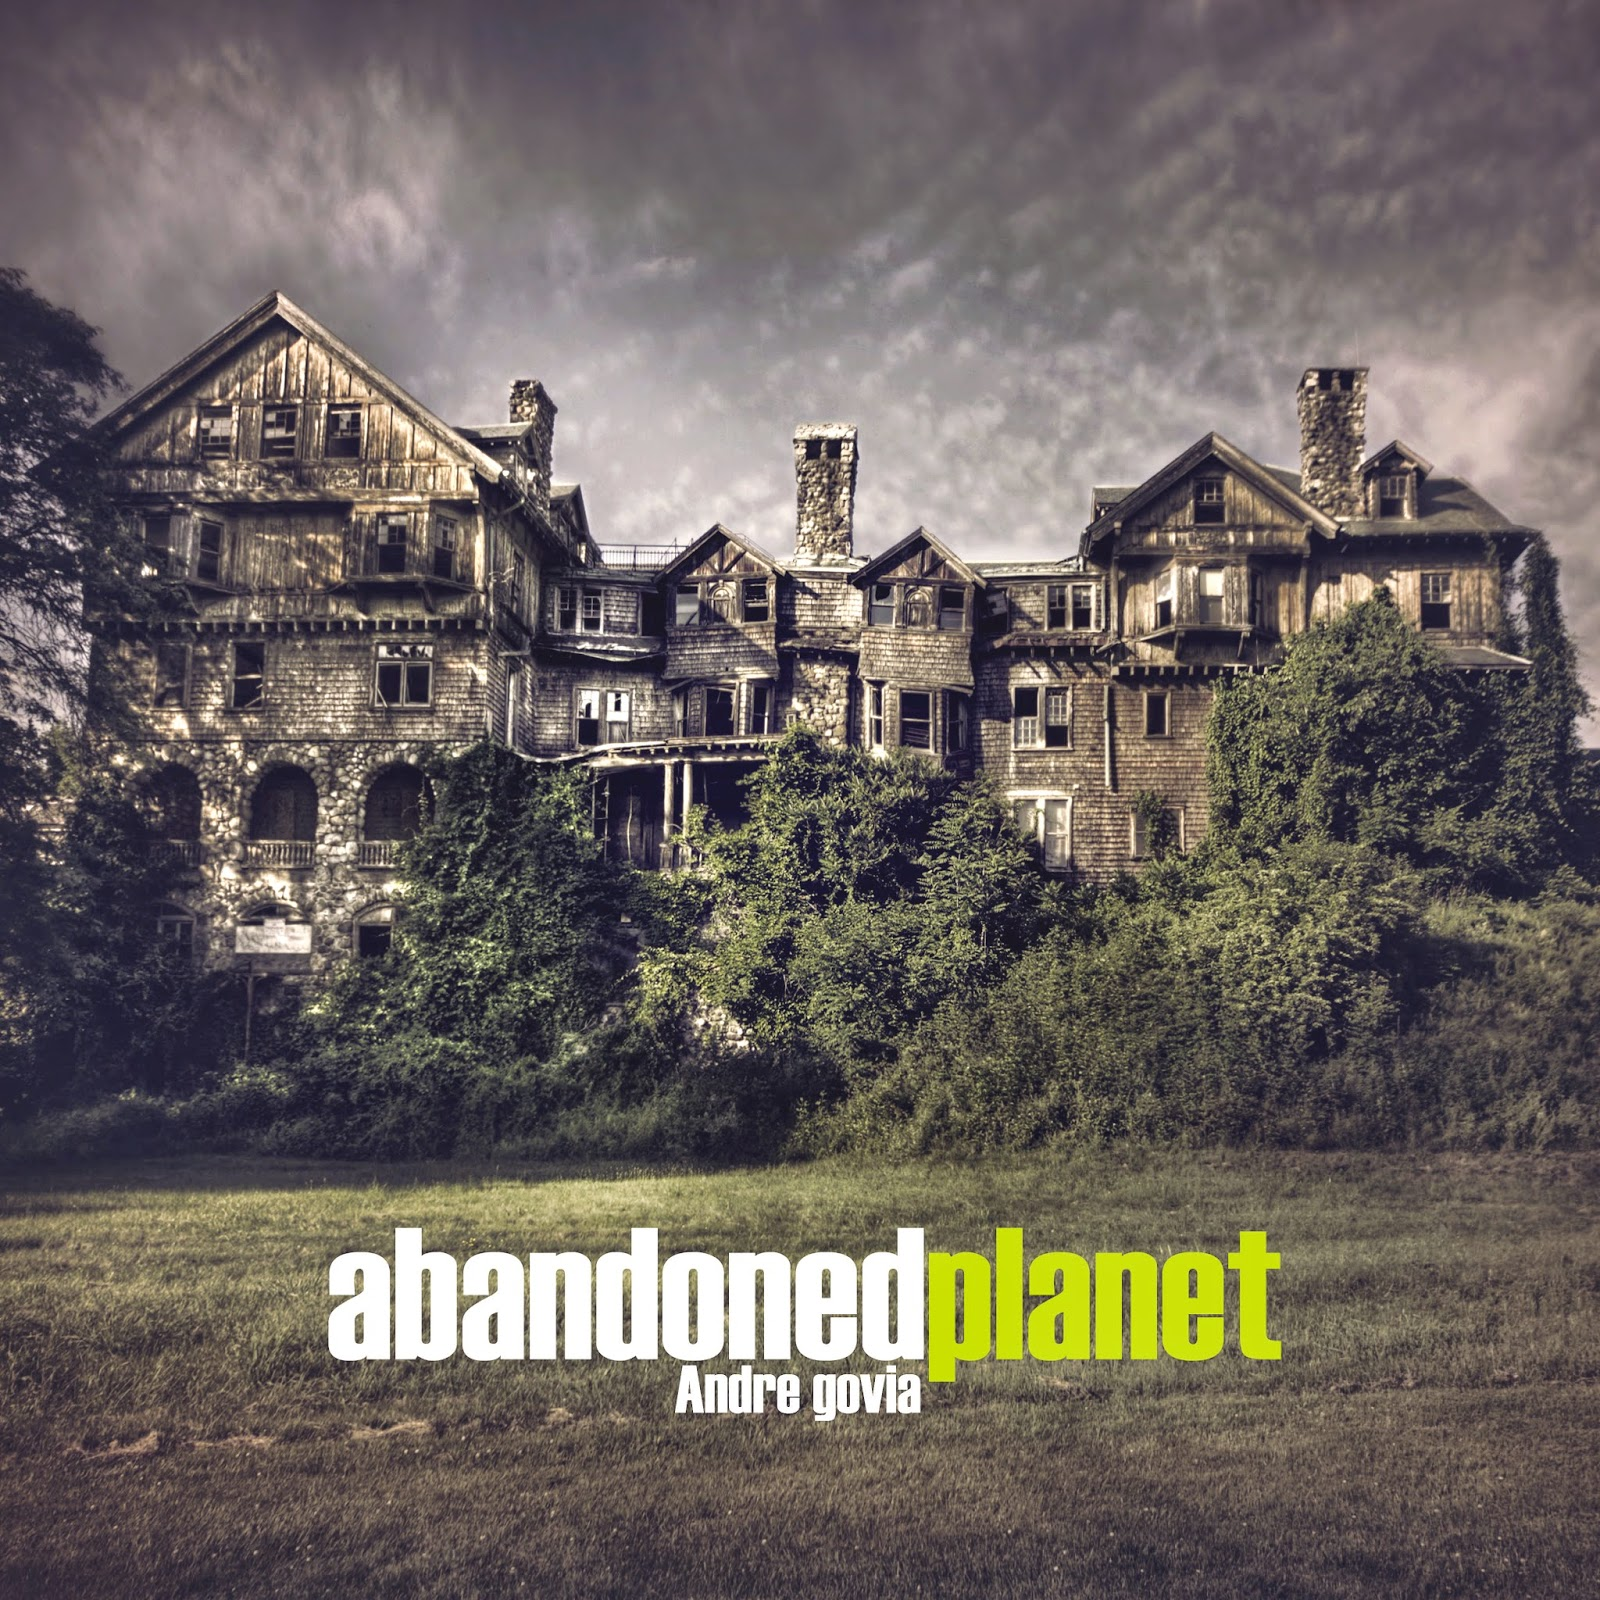 ande, abandoned planet, decay, building, rotting, wood building, haunted